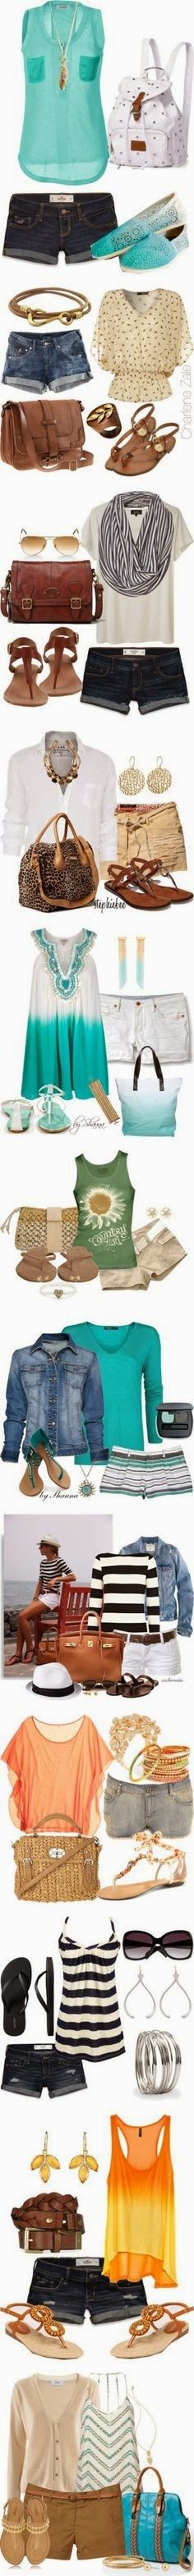 spring outfits 2015 part 1